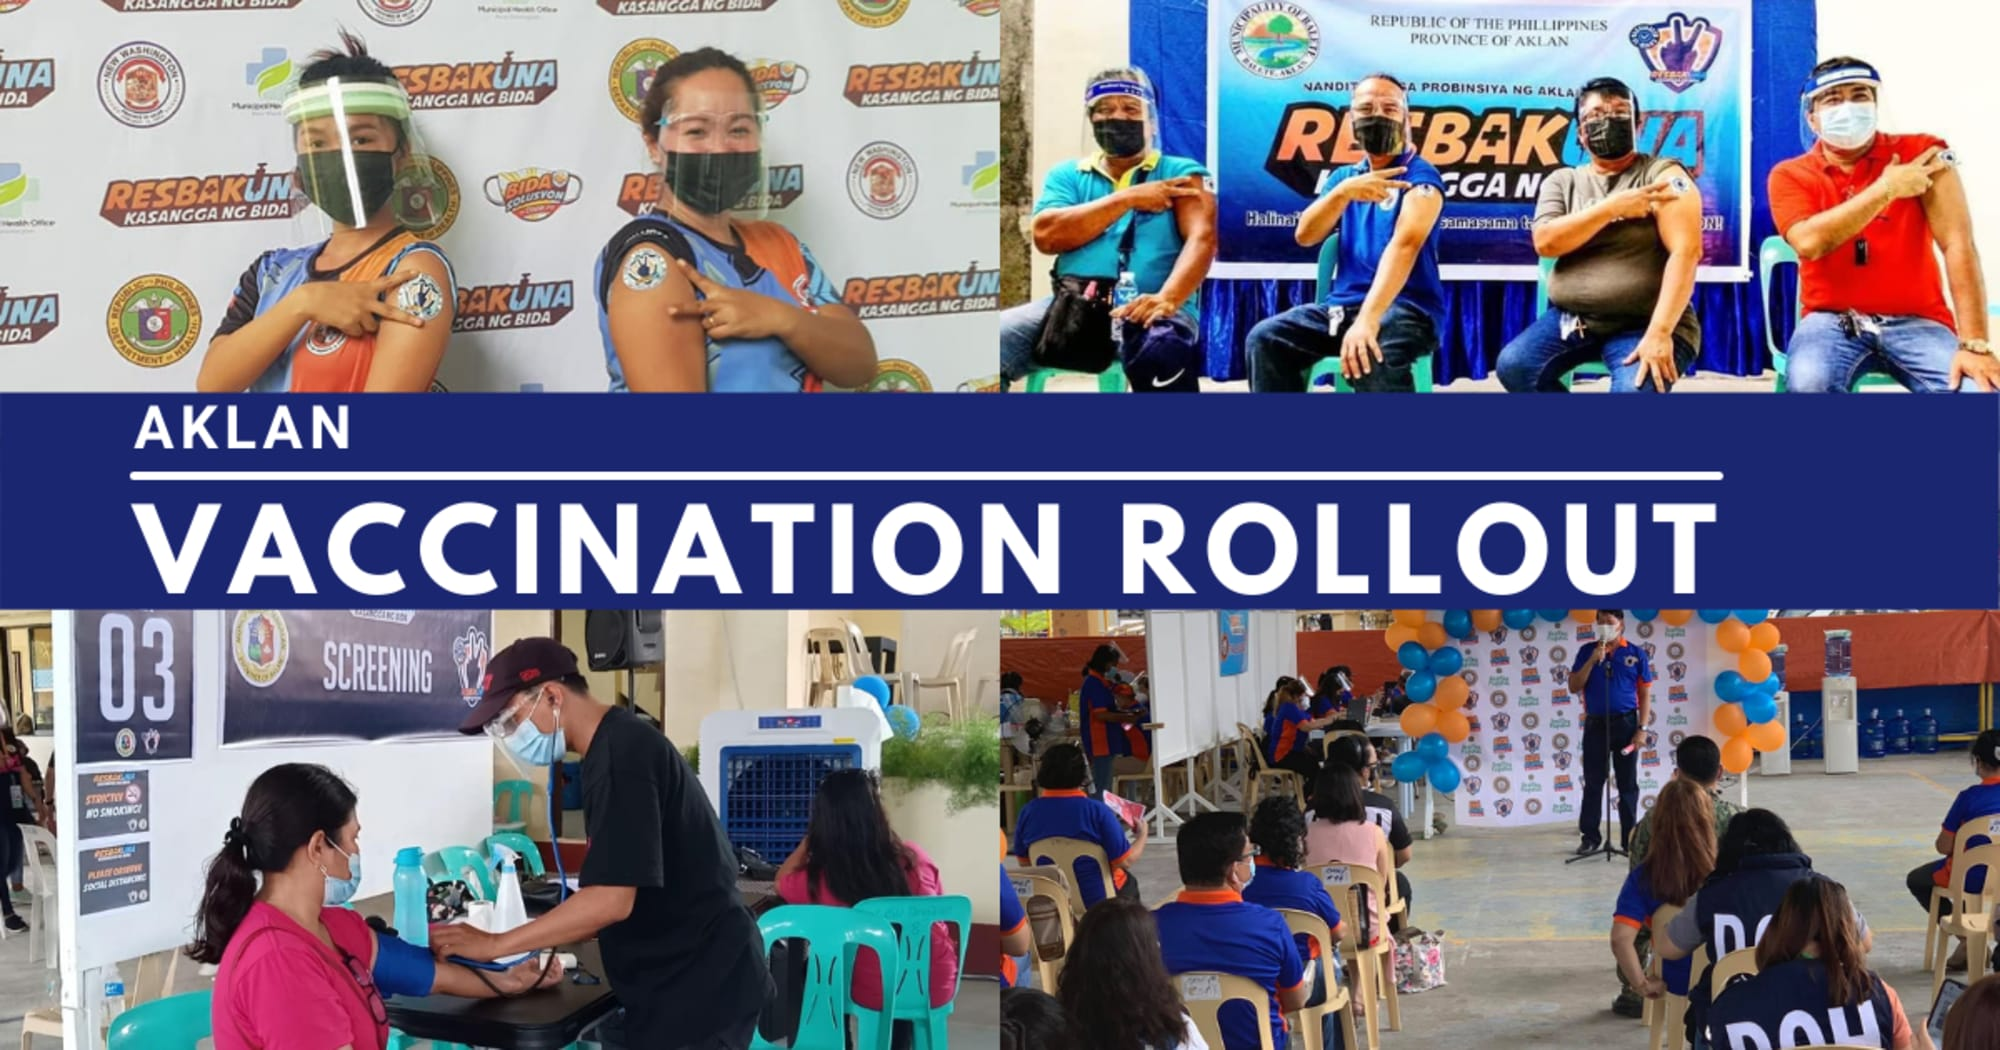 Vaccination Rollout finally begins in several towns on Aklan